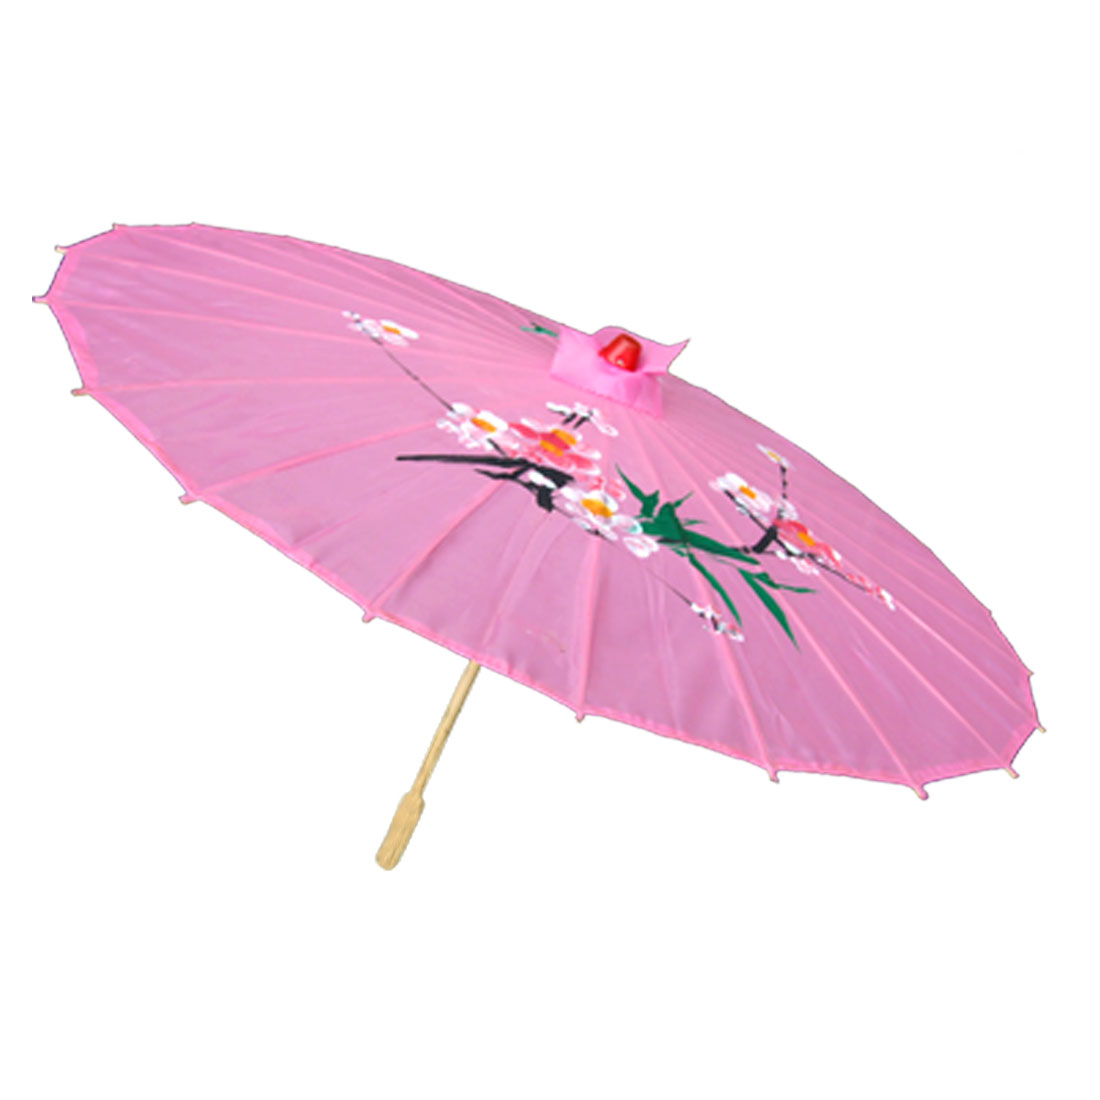 Pink Elegant Rain Sun Umbrella for Ladies Flower Leafage Pattern